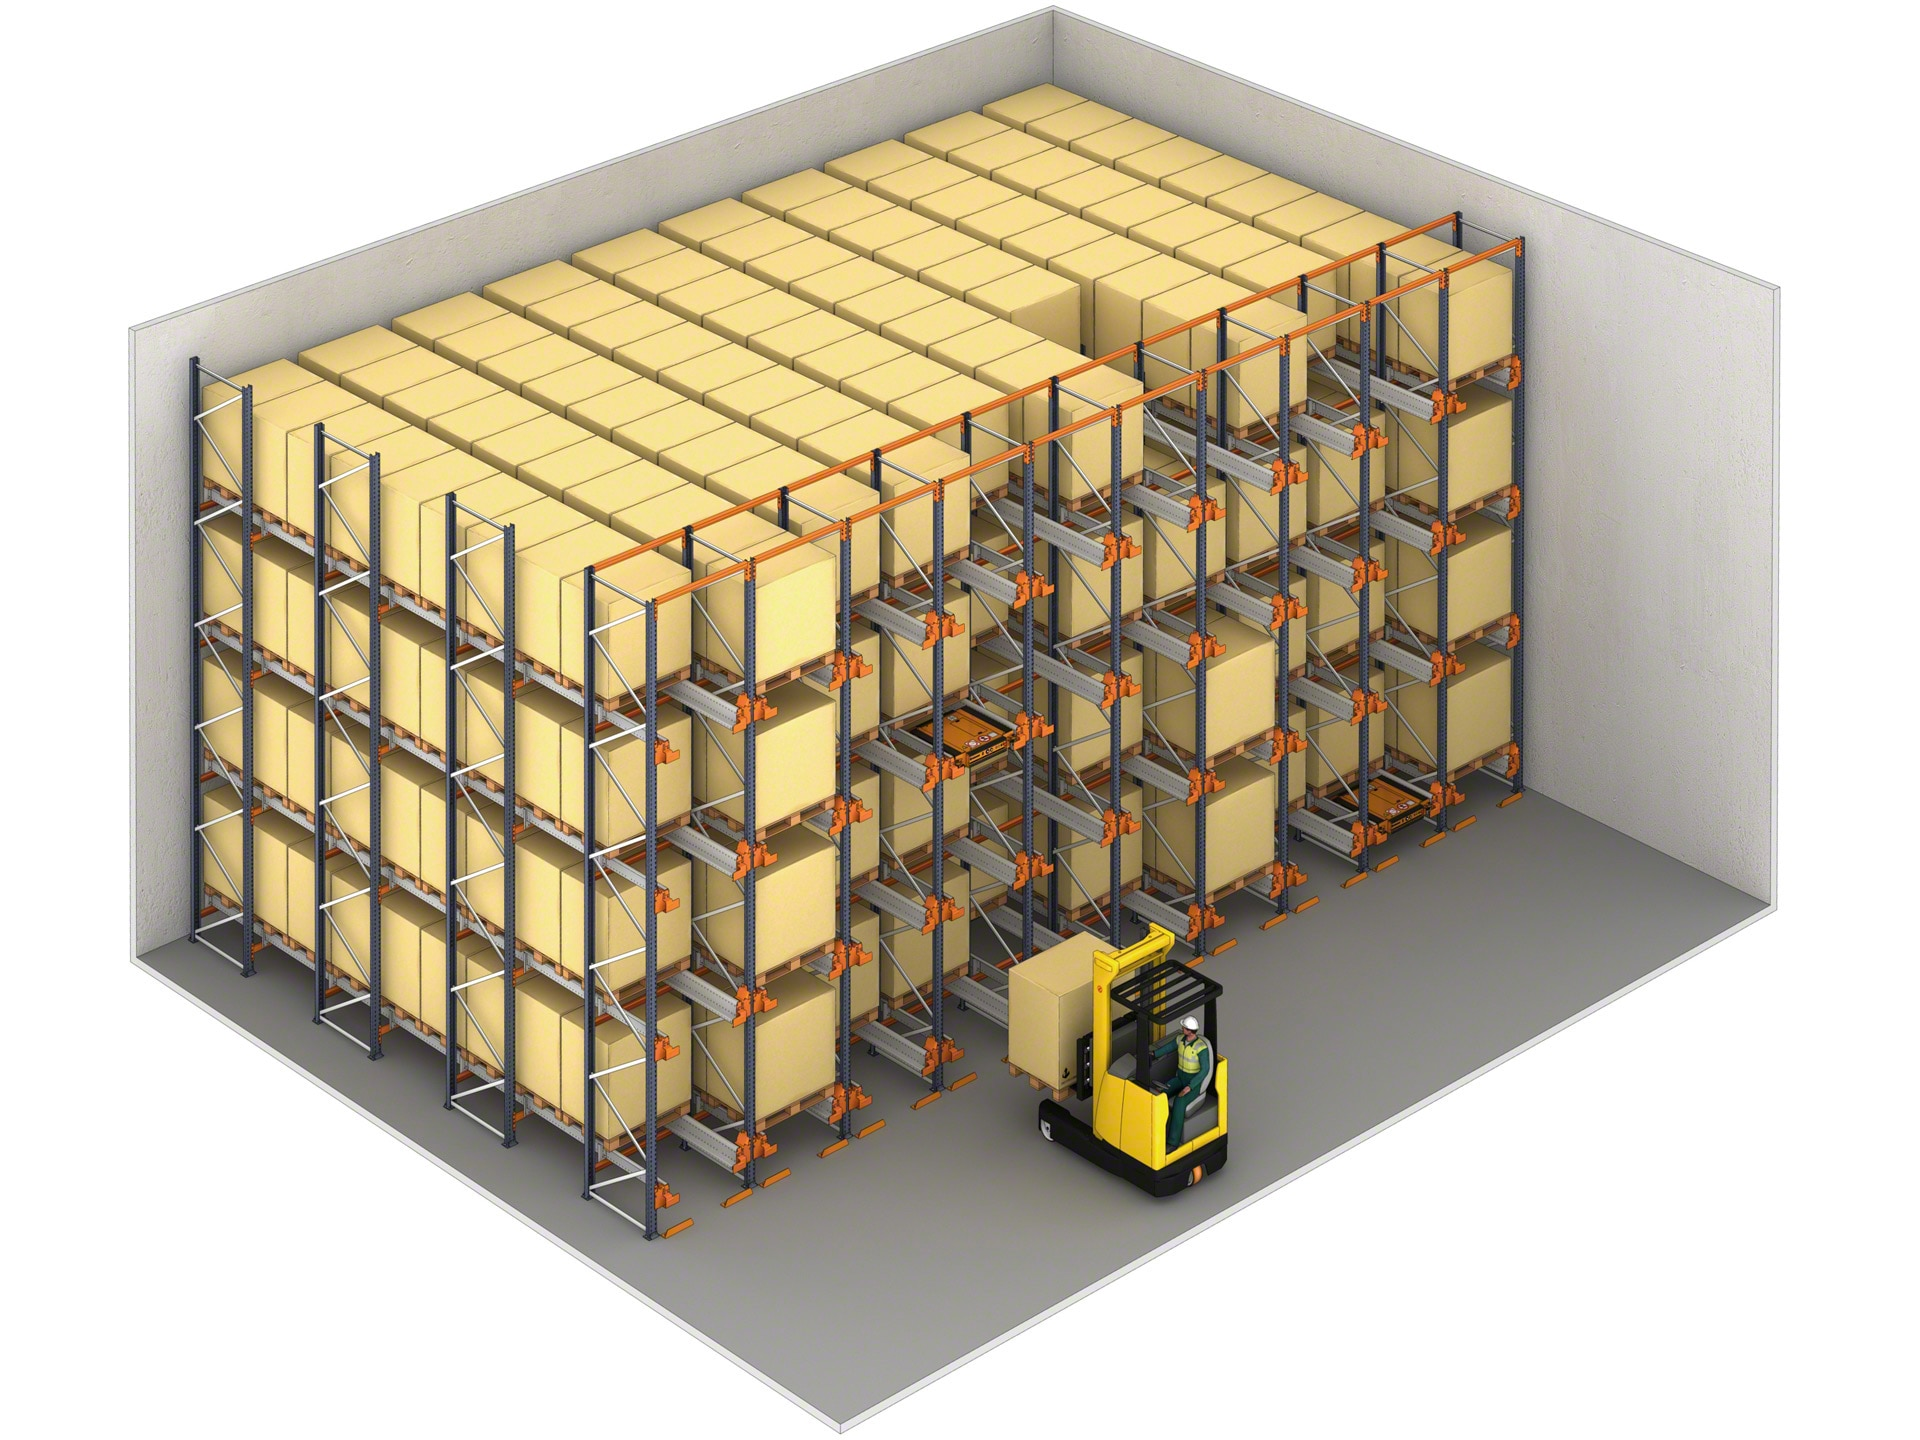 With just one order, the Pallet Shuttle can fill an entire storage channel